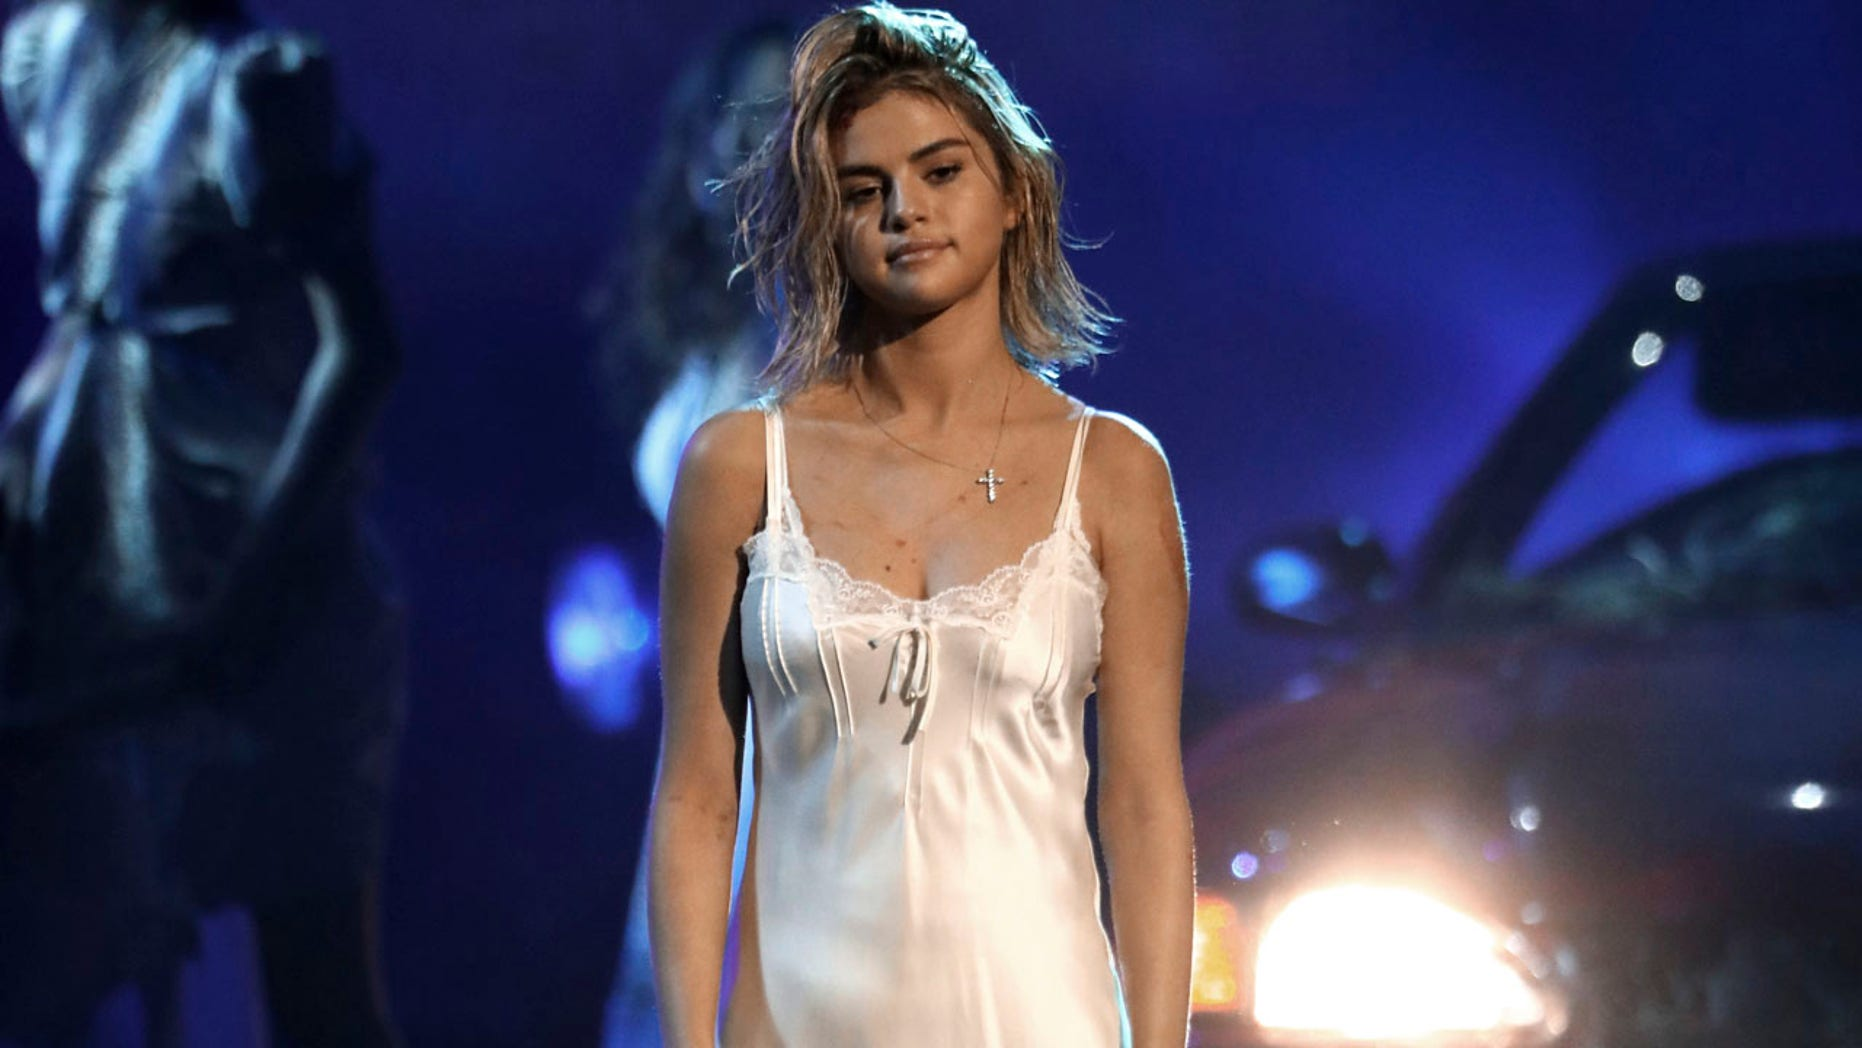 """Actress and pop star Selena Gomez is seeking treatment to combat """"emotional stresses,"""" Fox News has learned."""